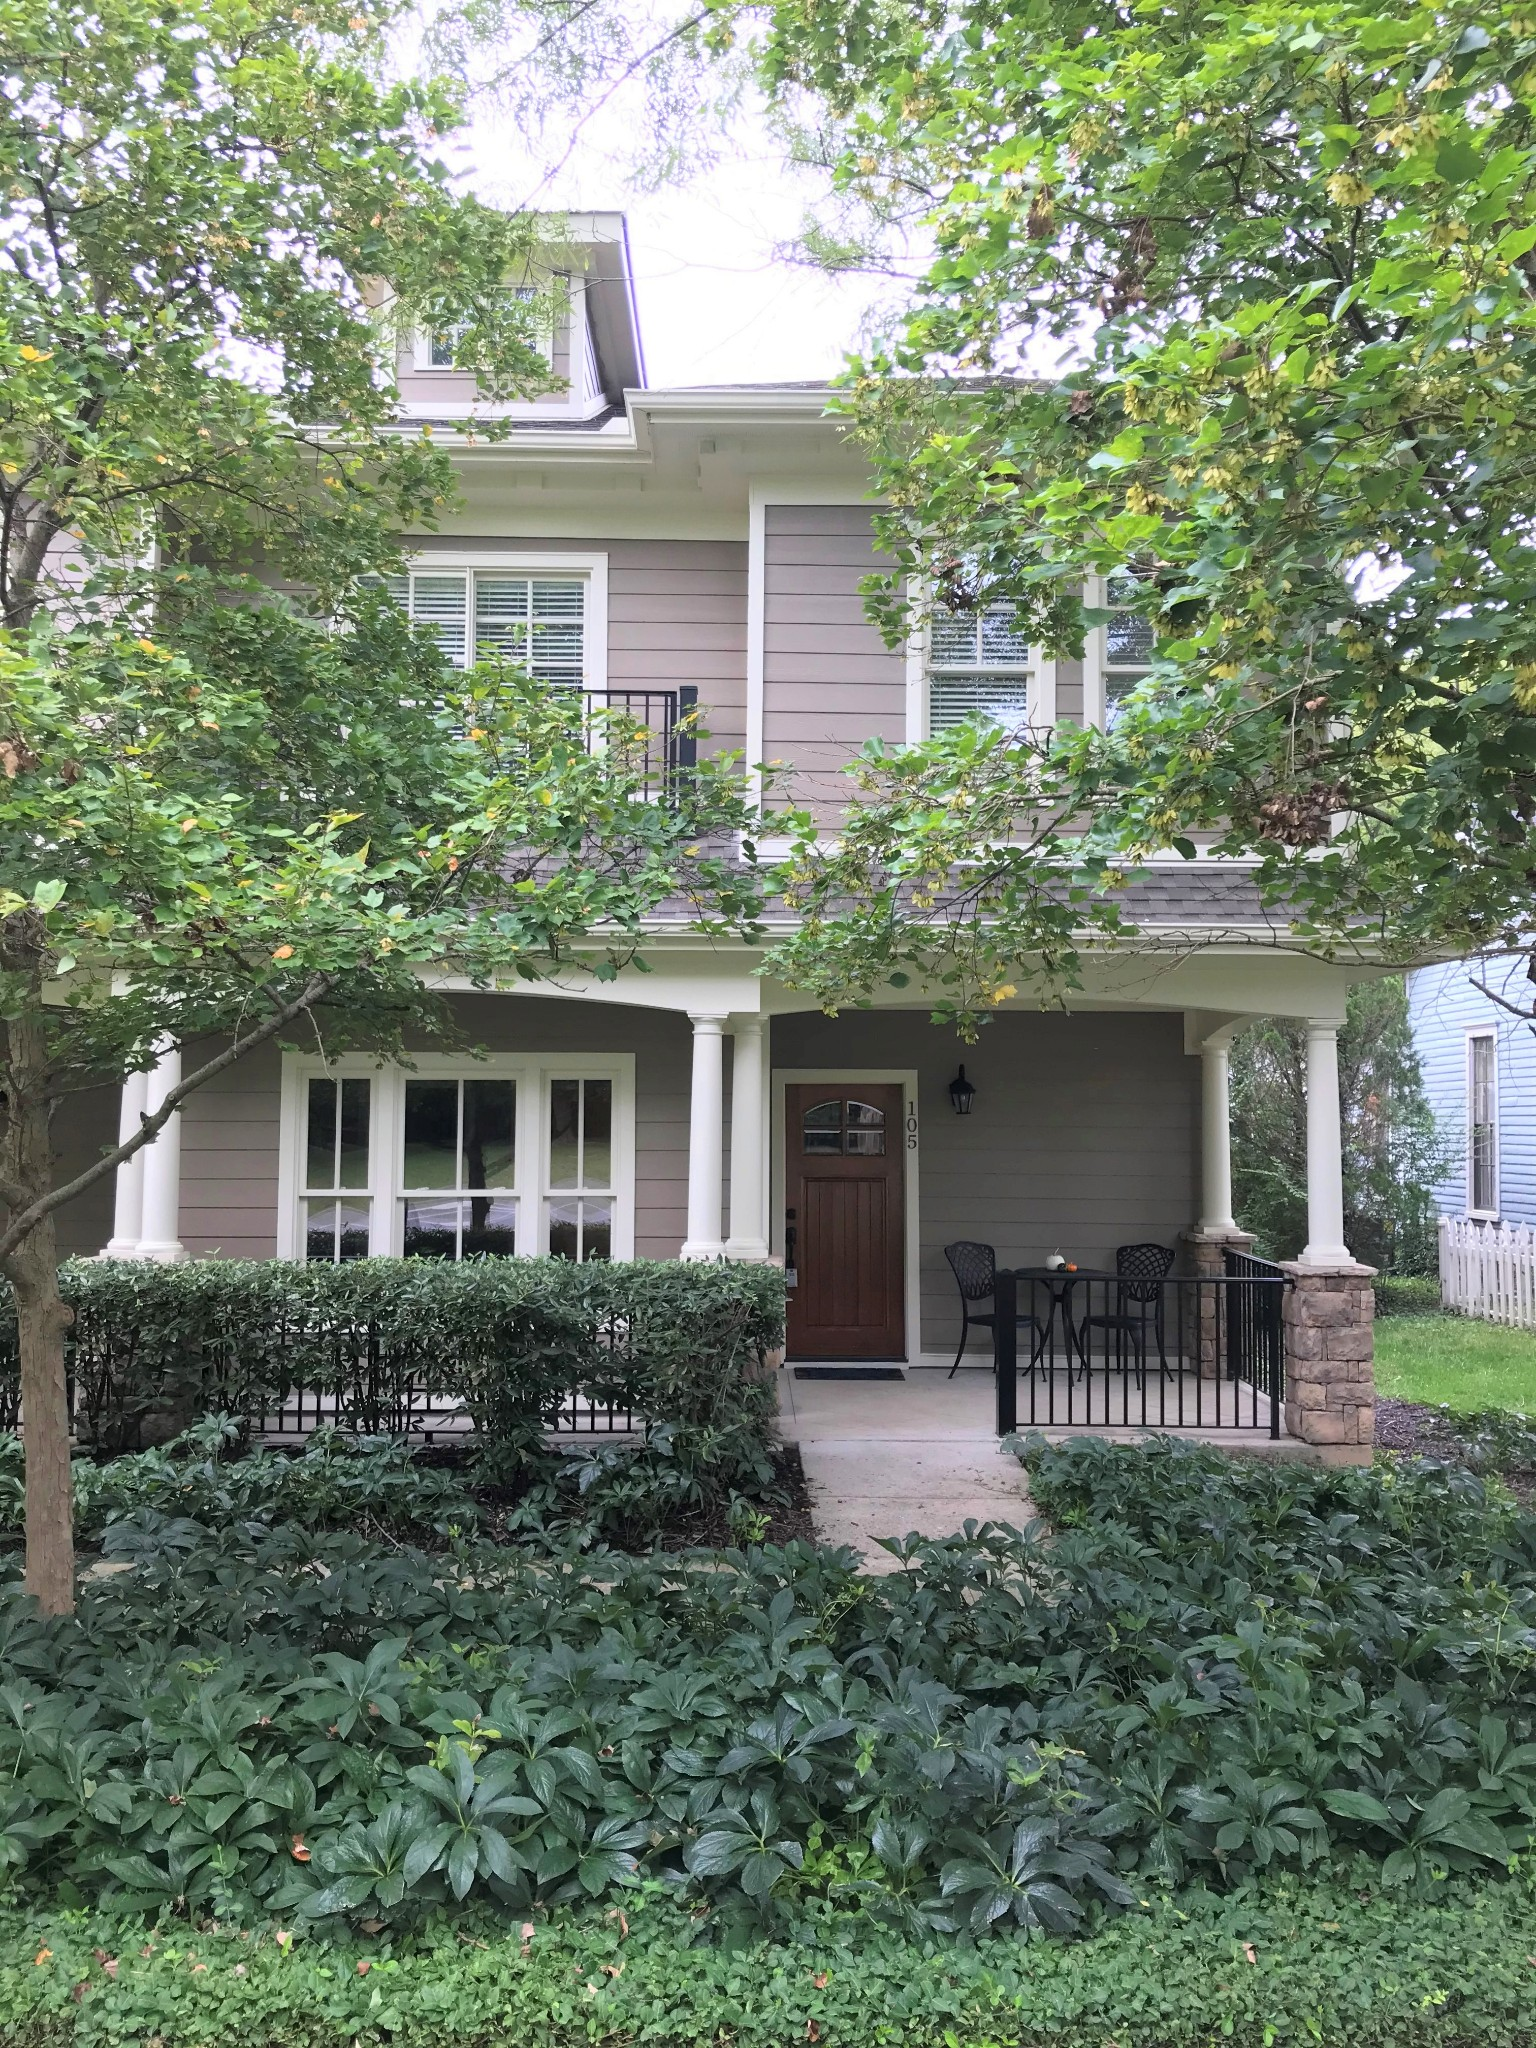 IMMACULATE is the only way to describe this~EVERYTHING has been gone over with a fine-tooth comb~Fresh paint walls/trim/ceiling~New light fixtures~New carpet~New toilets w/soft closure lids~2-car ATTACHED garage~Absolutely move-in condition~Fabulous location